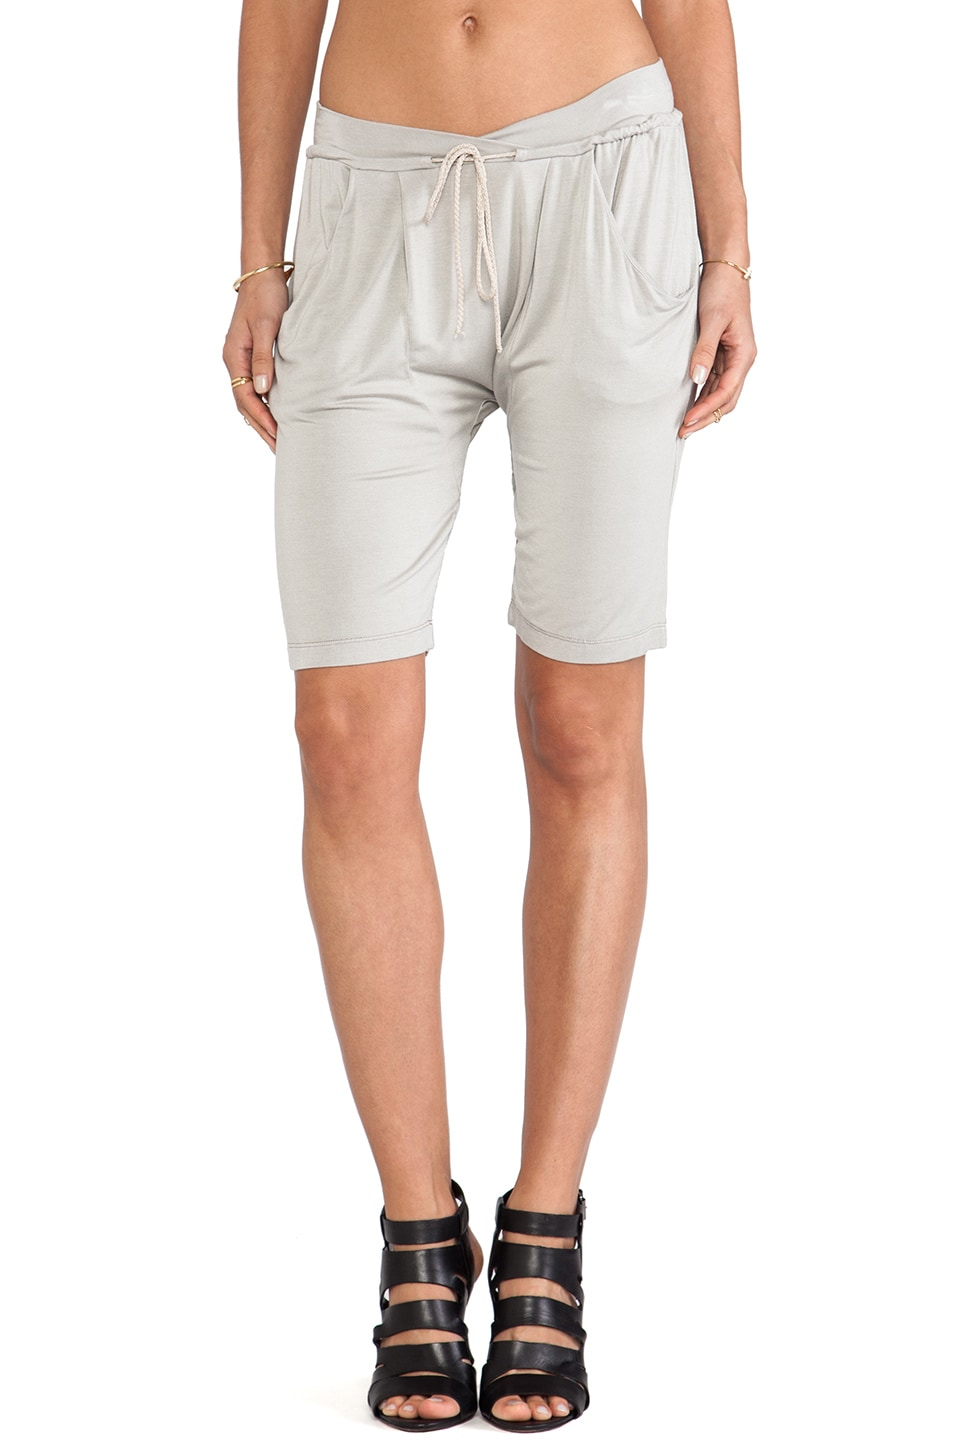 sen Yahina Short in Oyster